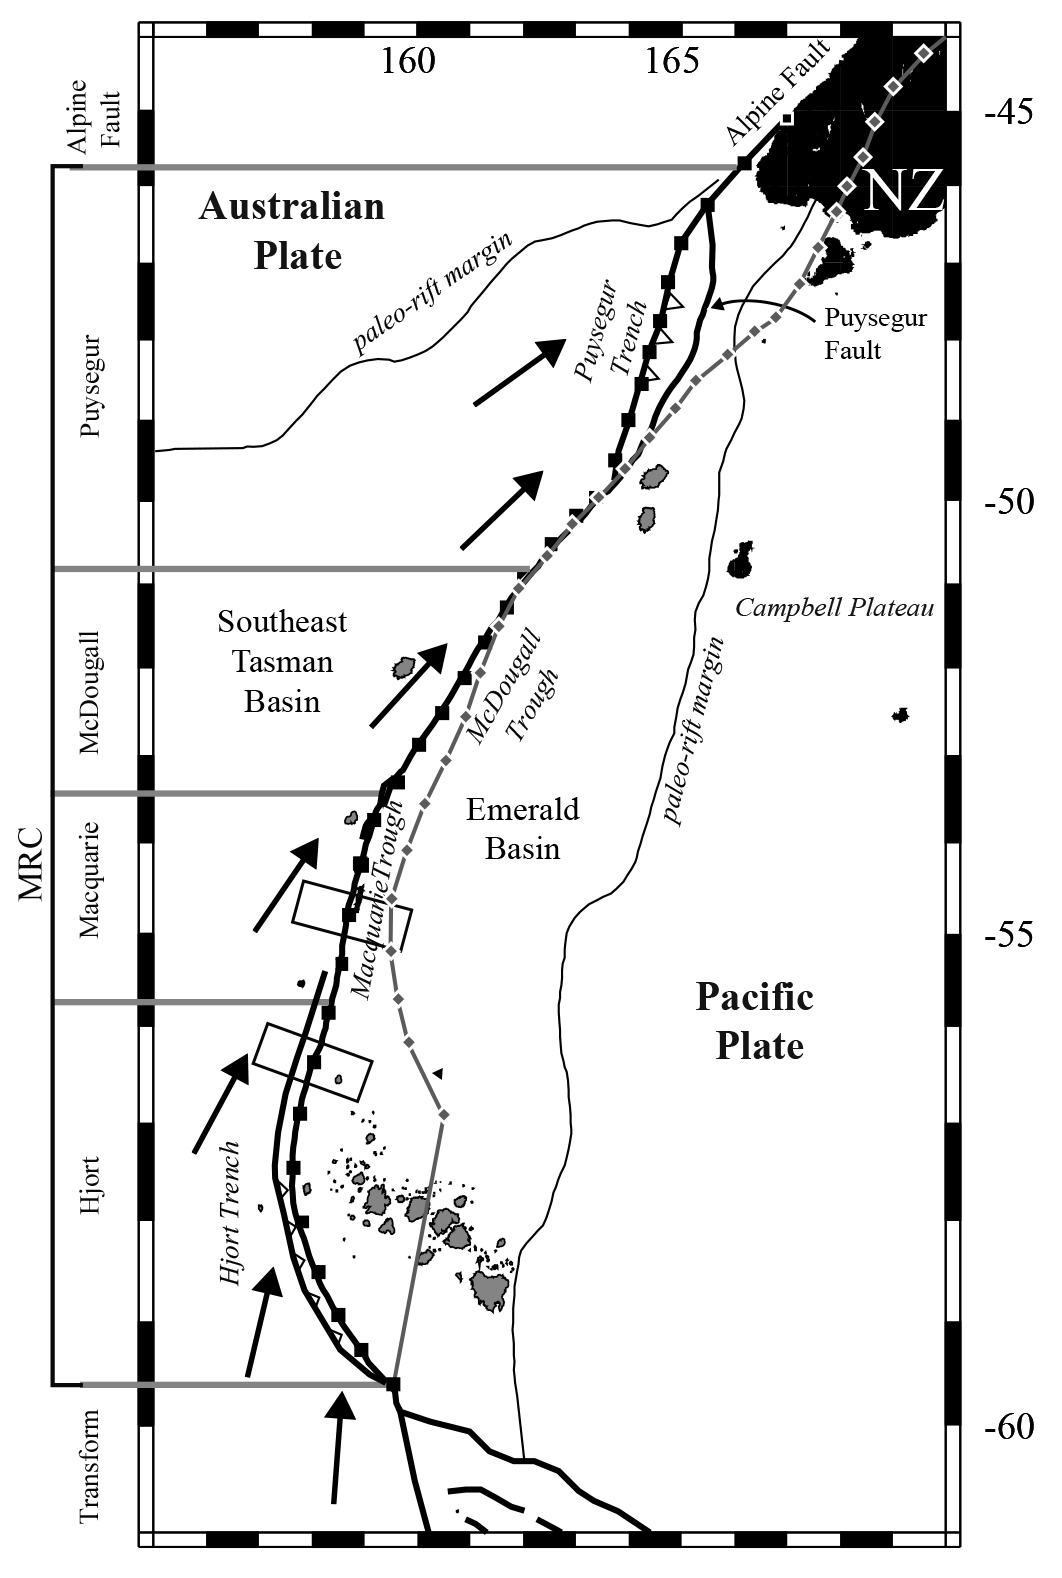 Physiography of the Macquarie Ridge Complex